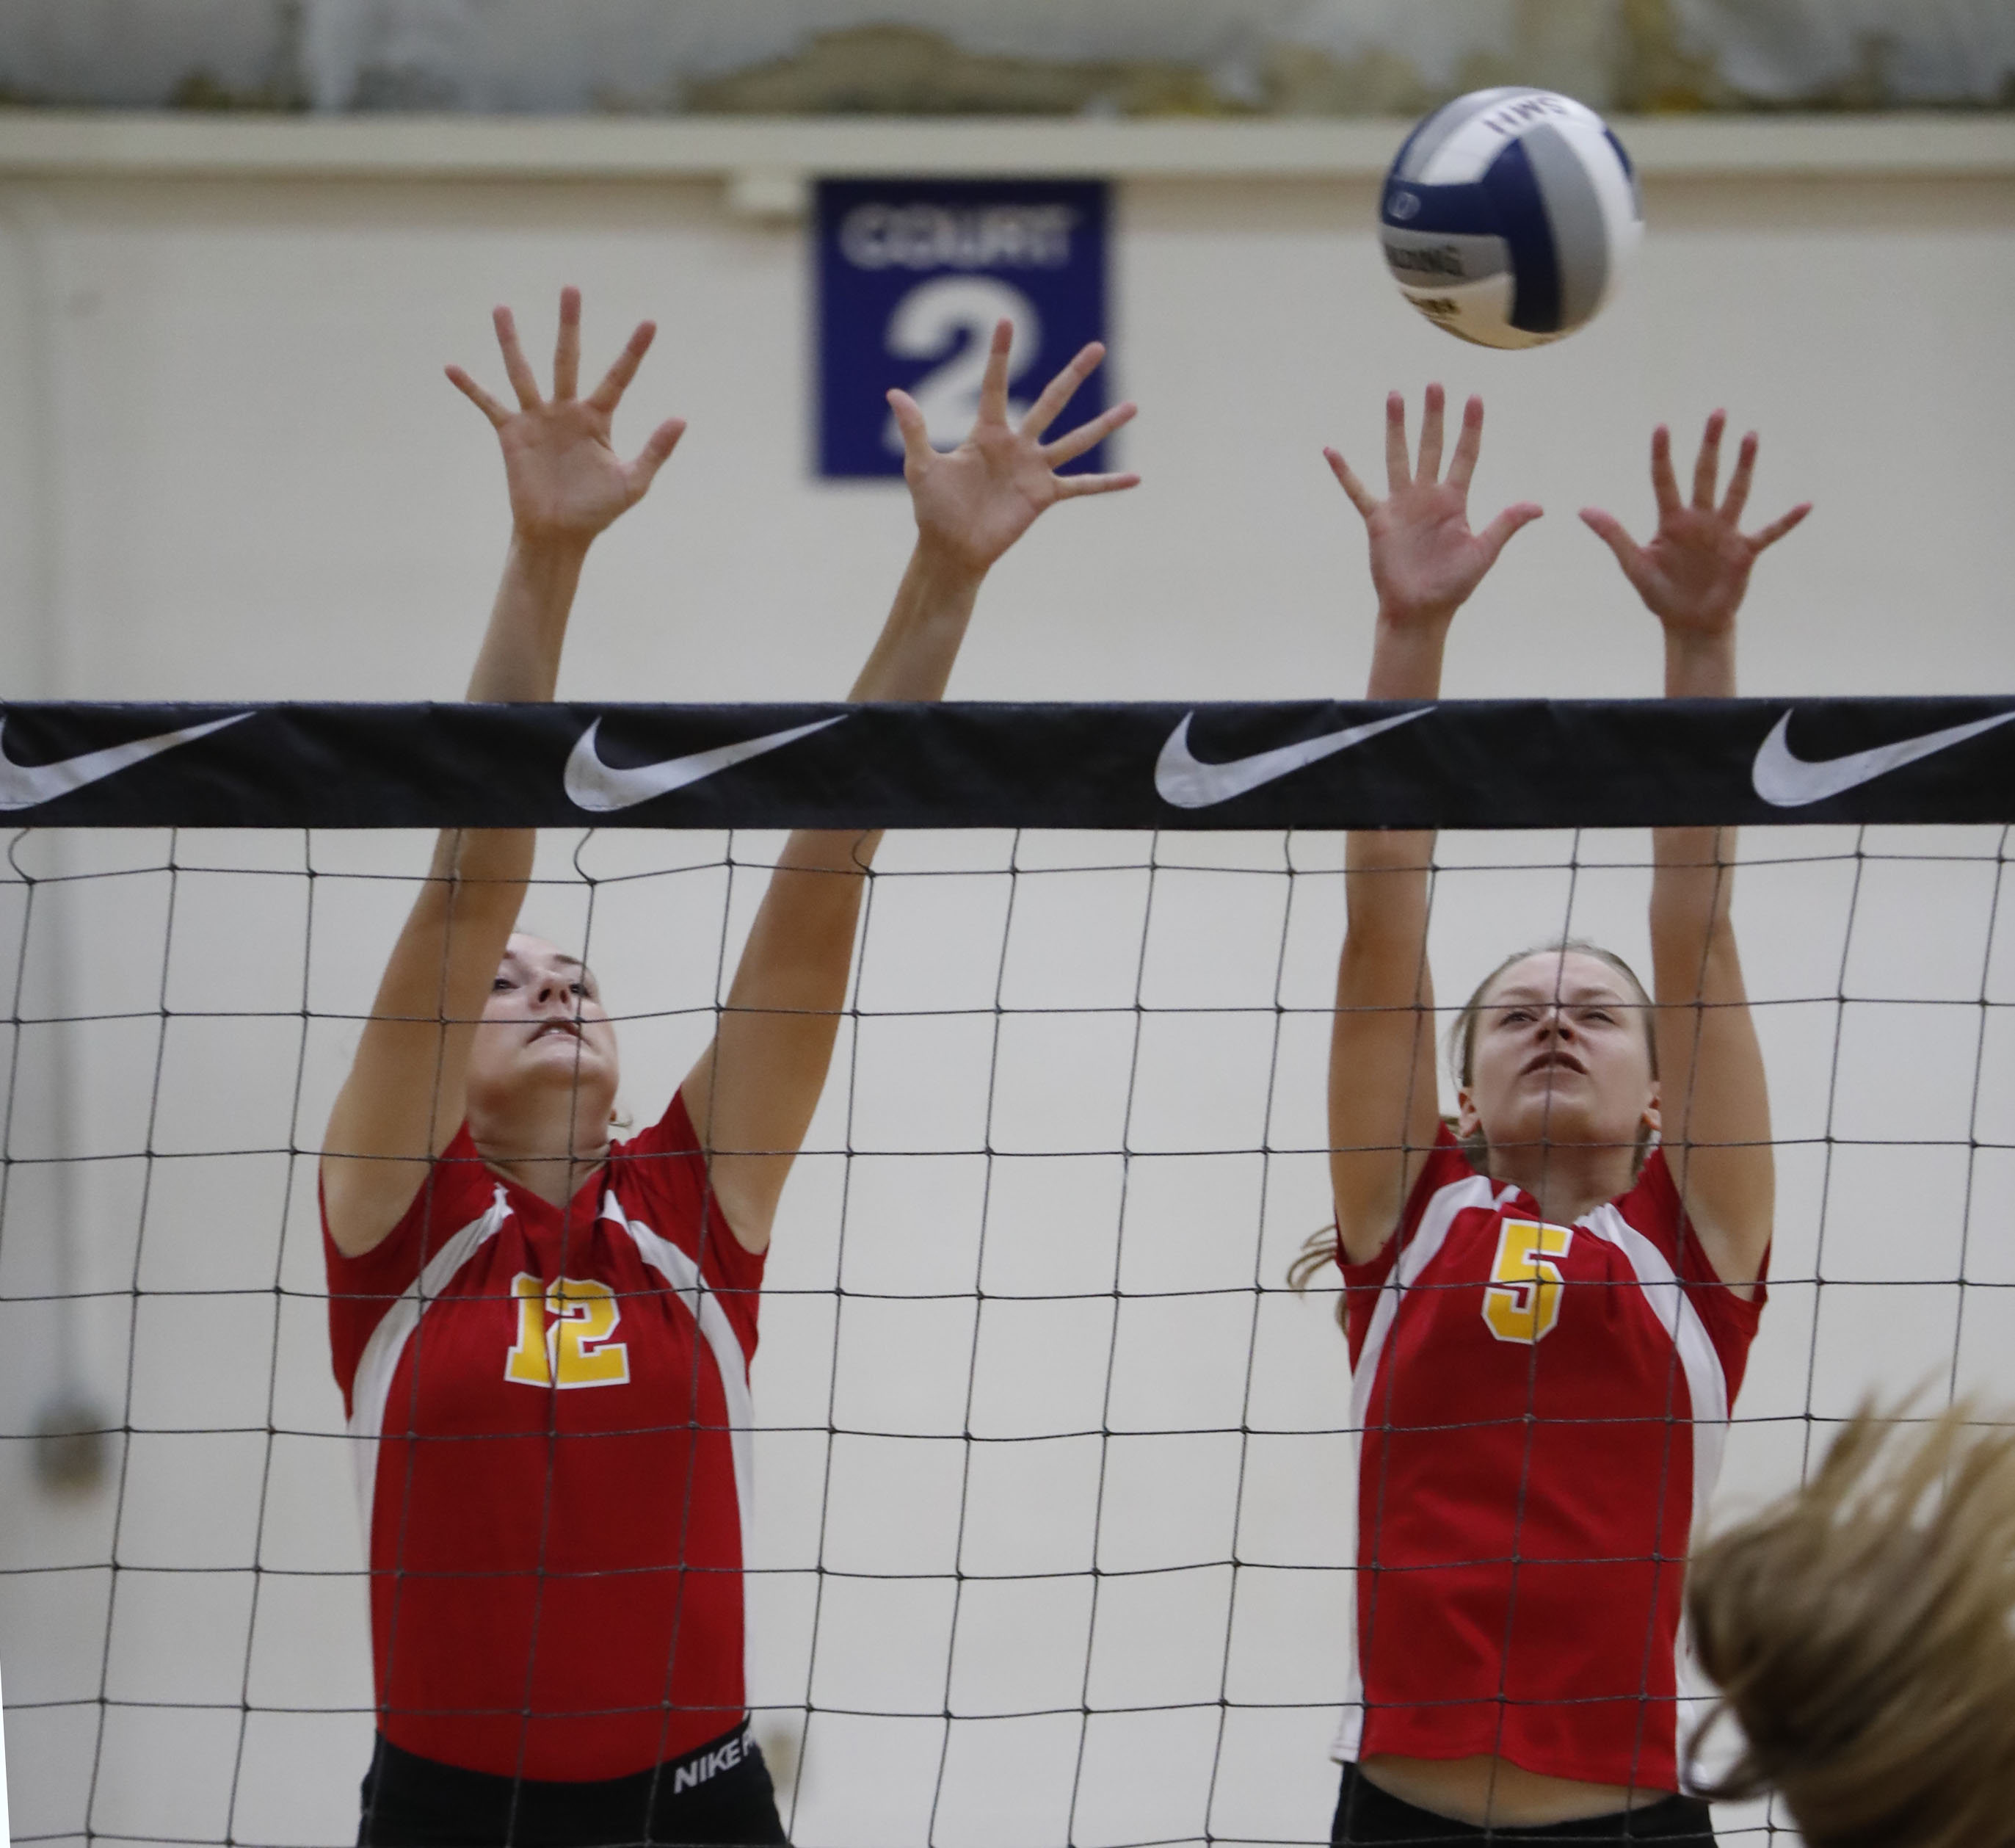 Leah Orsini and Megan Wiese are a part of the new No. 1 large school Williamsvlle East girls volleyball team. (Harry Scull Jr./Buffalo News)